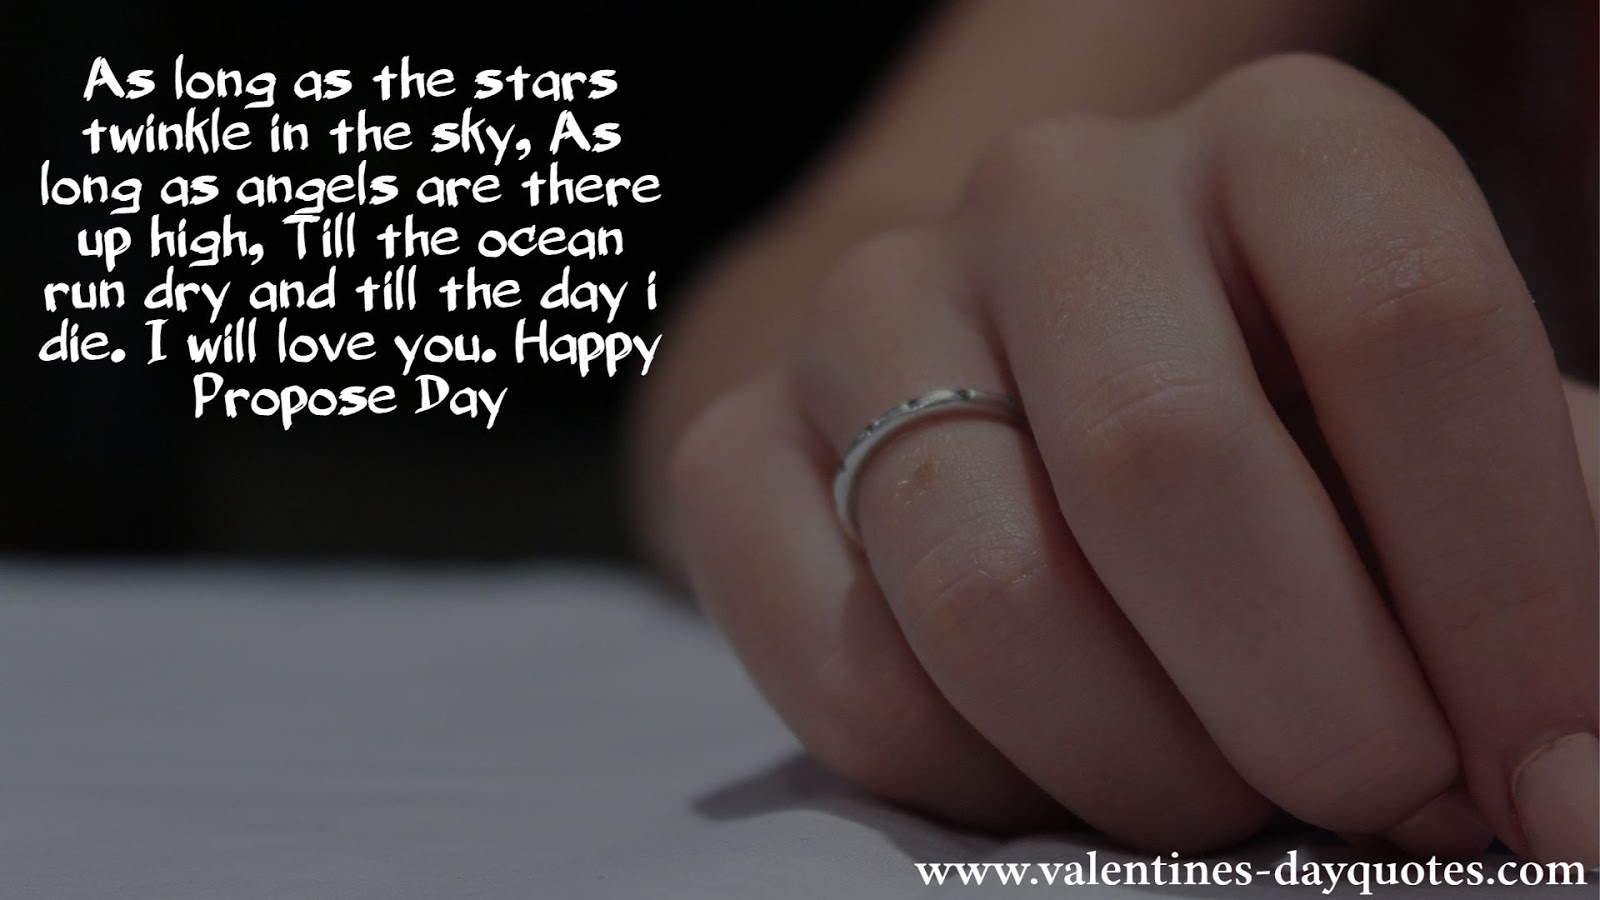 happy Propose Day 2019 Images and quotes